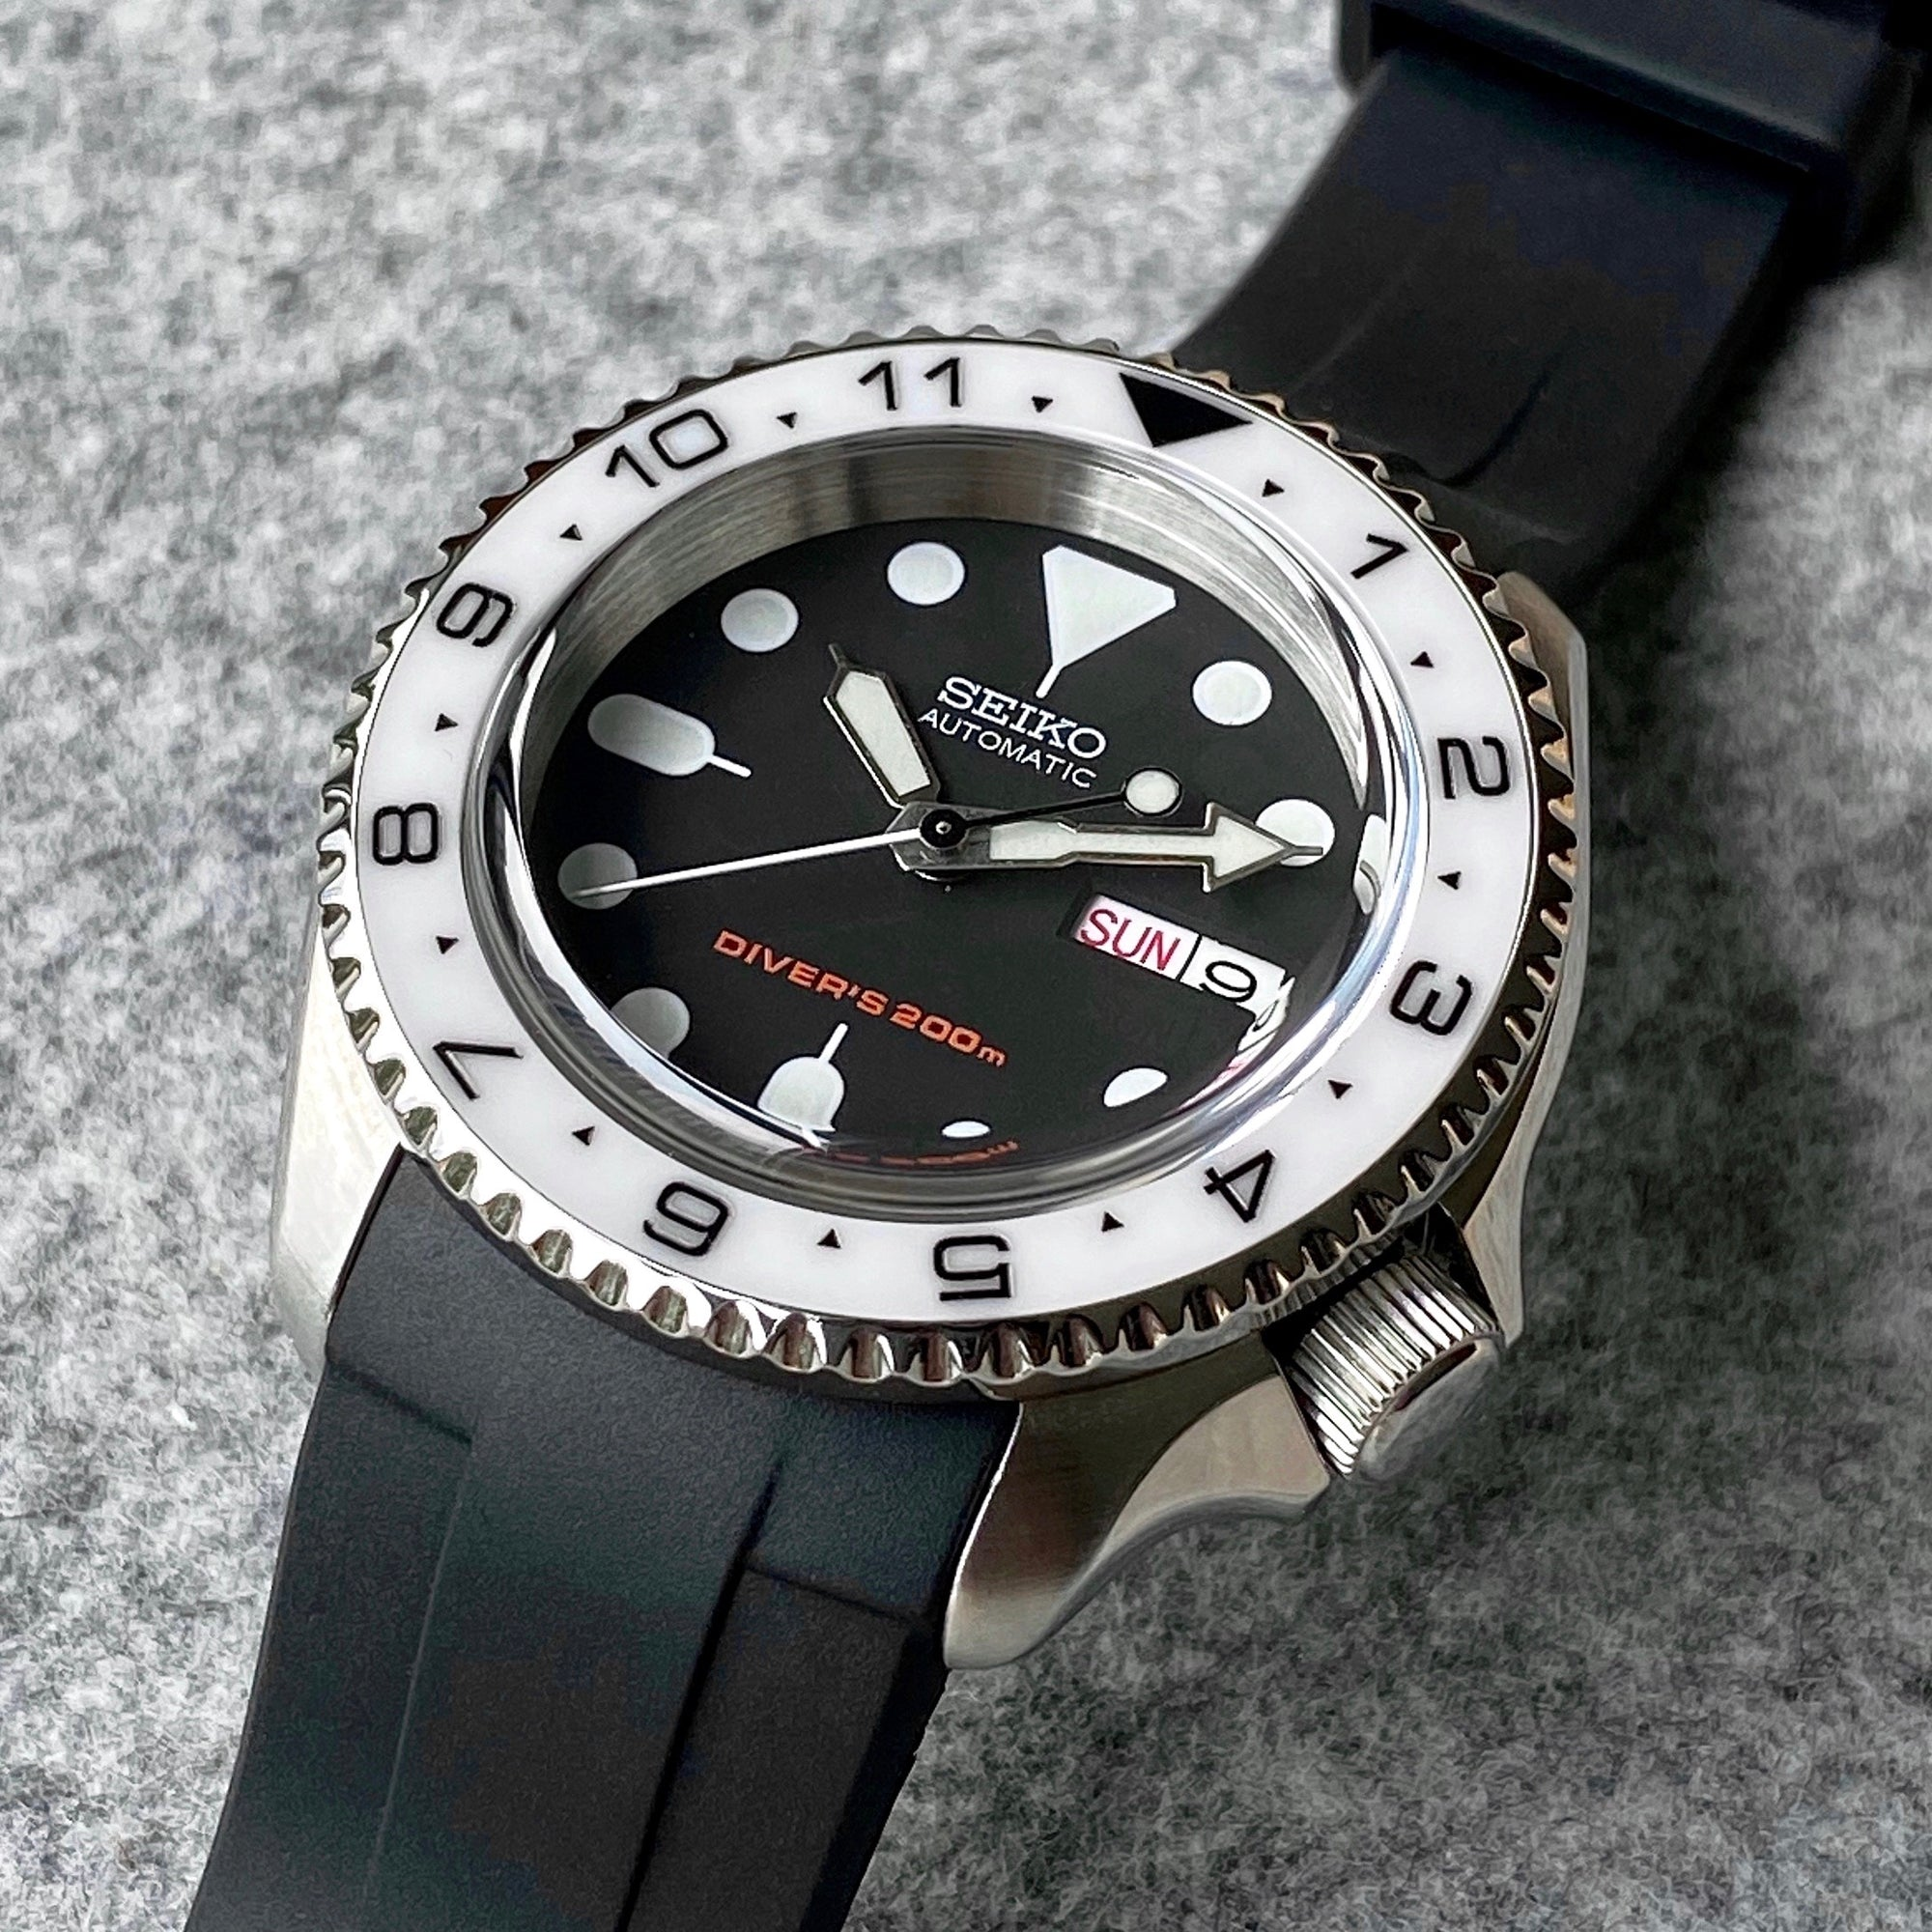 Ceramic Insert - SKX Dual Time White